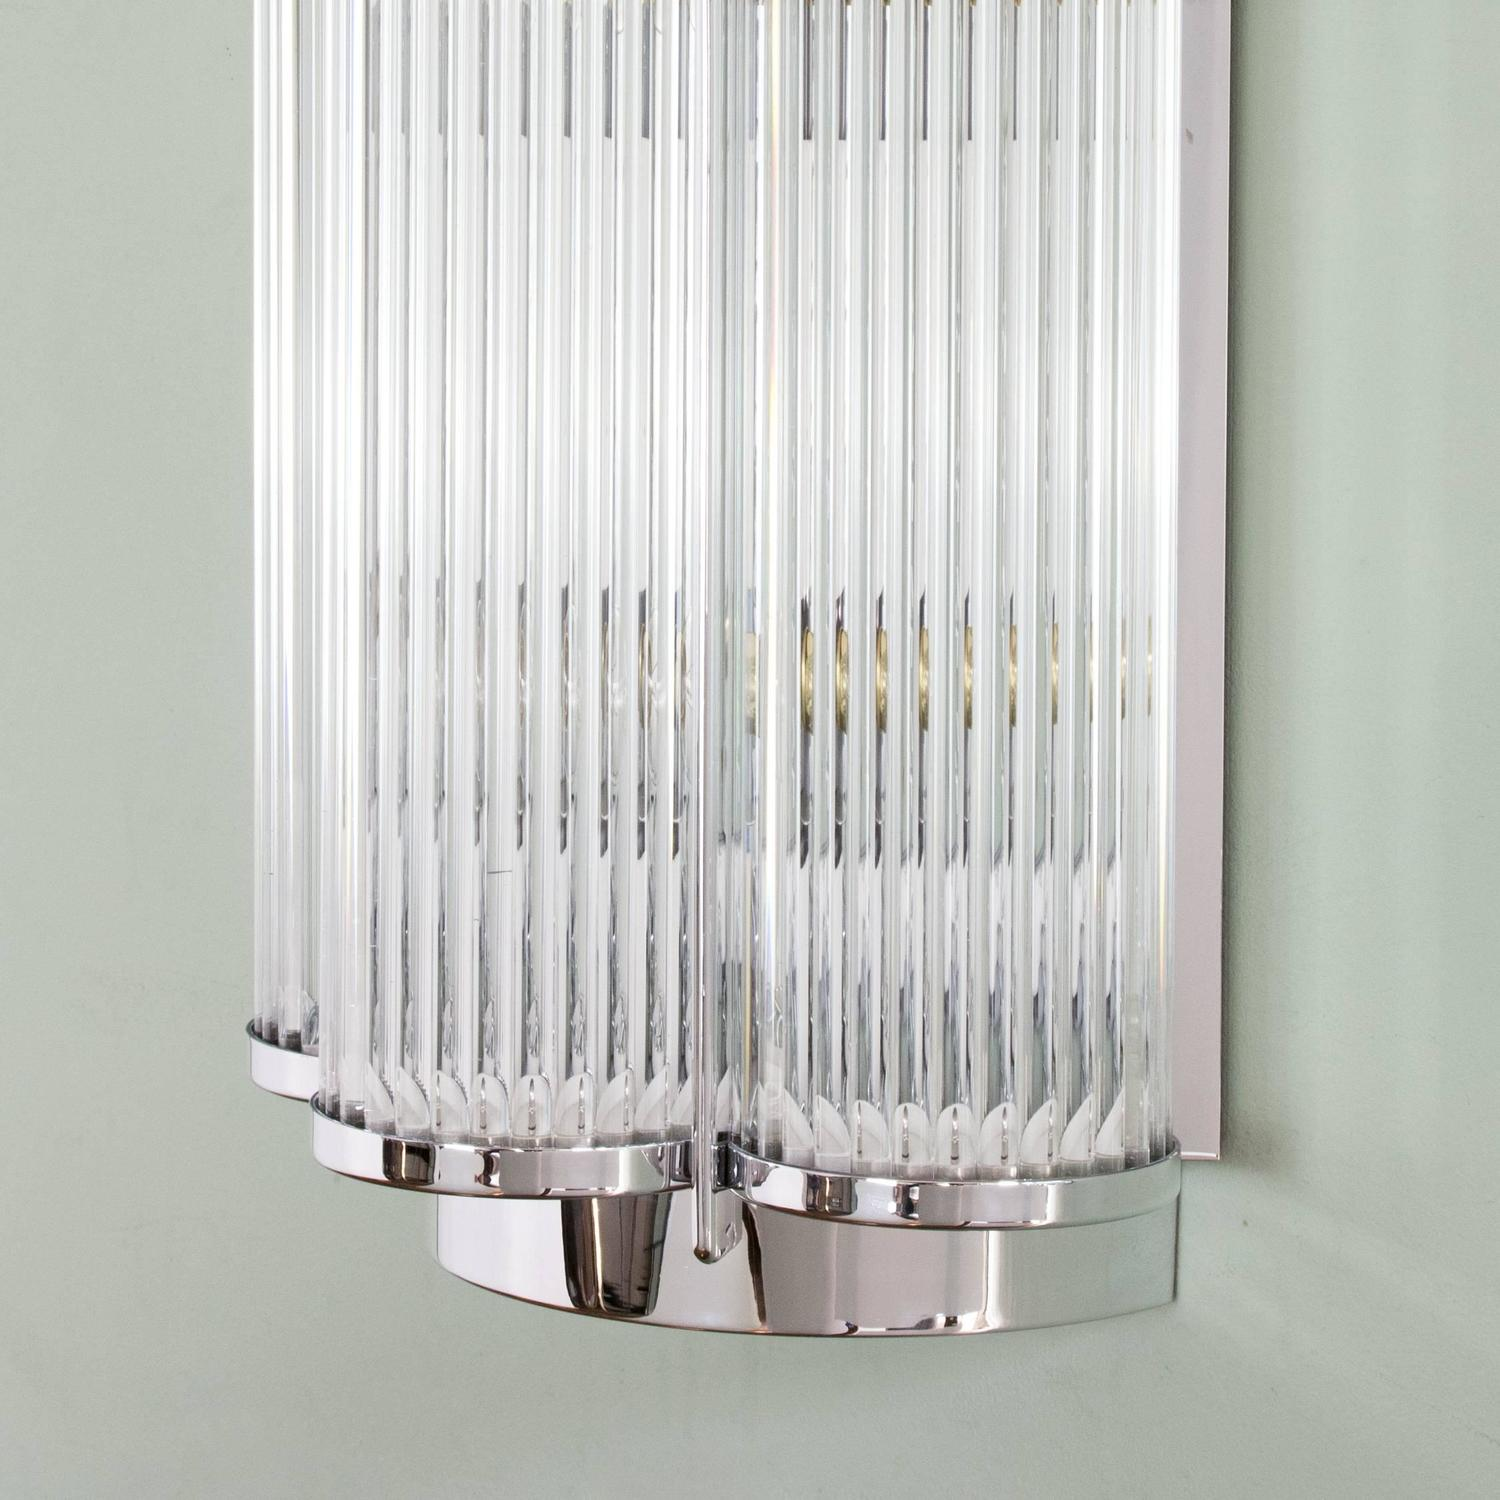 LASSCO Mid-Century Style Wall Light Chrome For Sale at 1stdibs